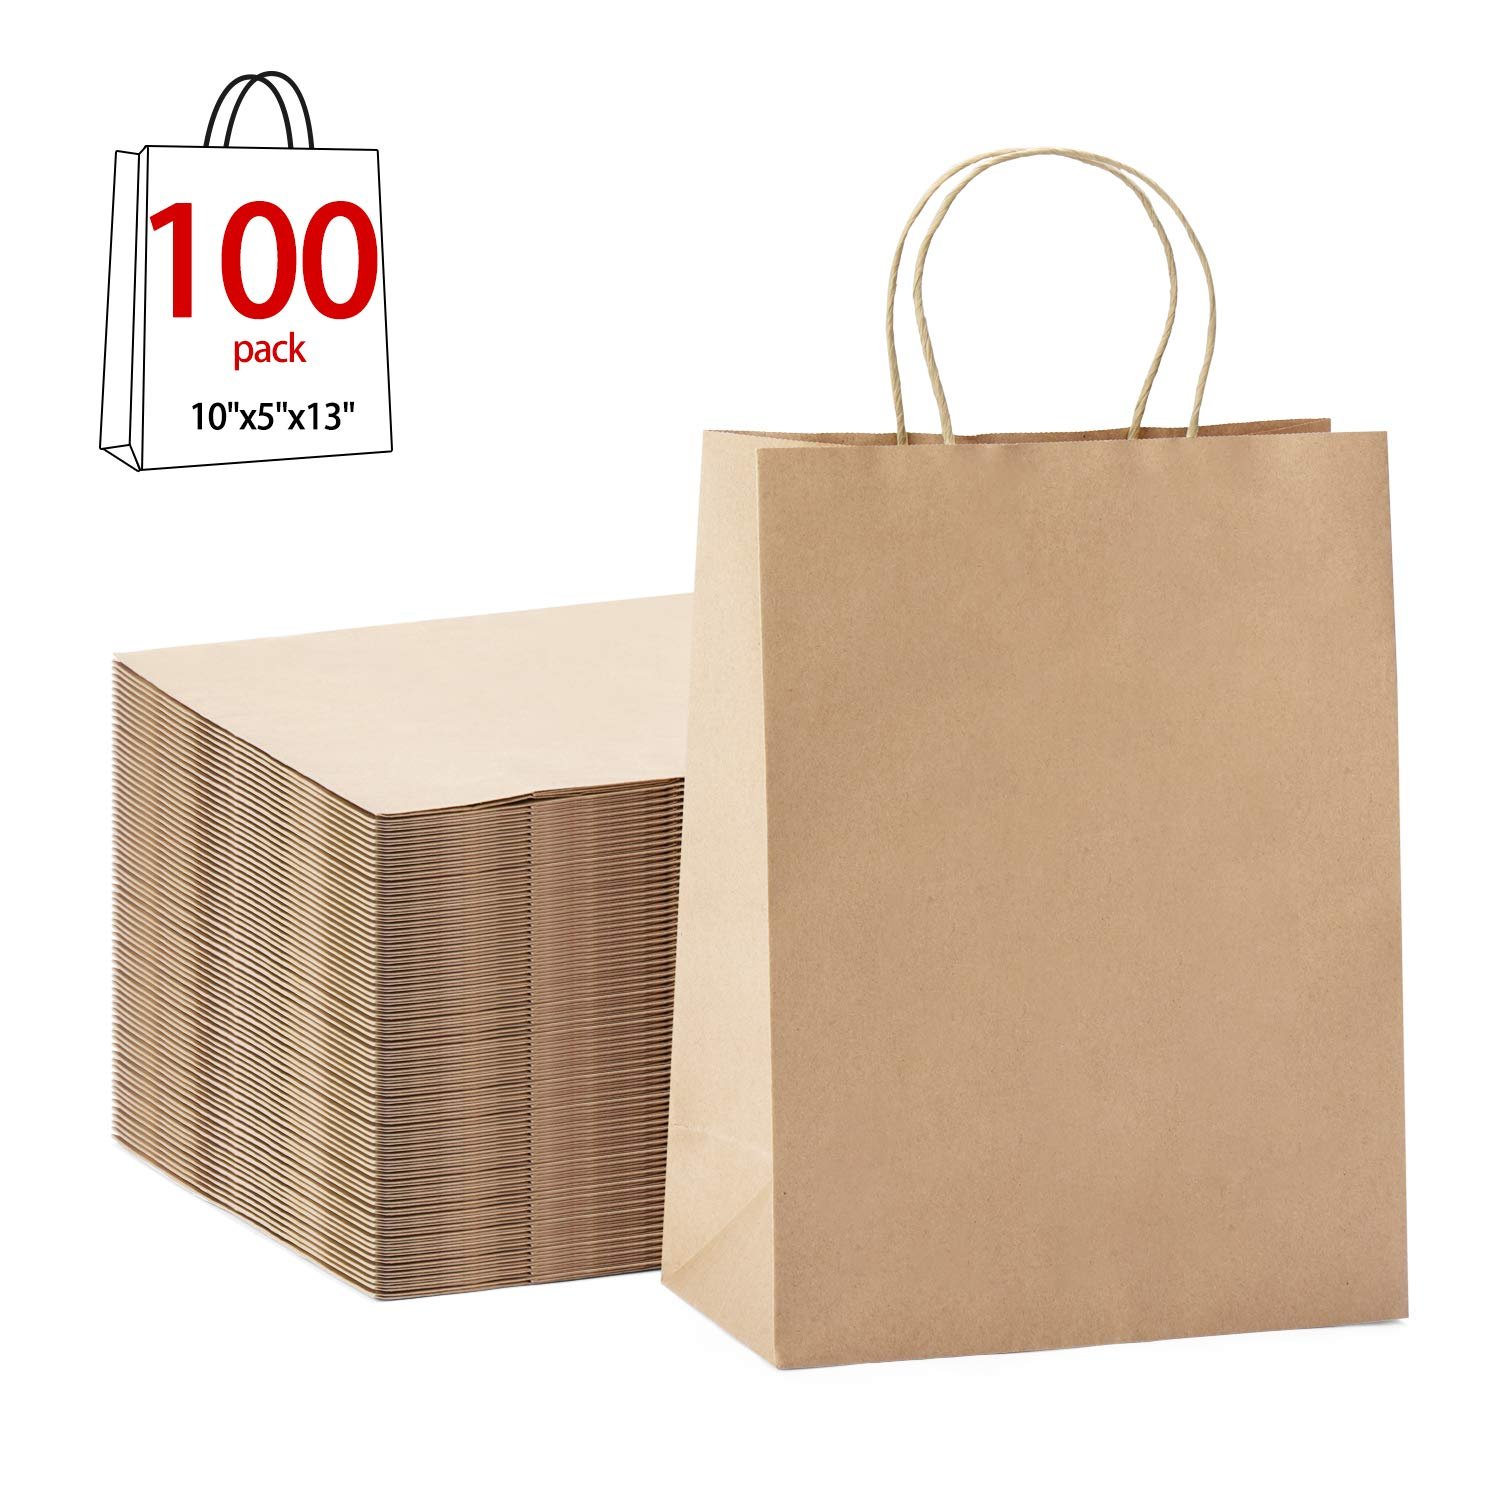 GSSUSA 100Pcs 10'' x 5'' x 13'' Brown Kraft Paper Bags Gift Bags with Handles, Shopping Durable Reusable Merchandise Retail Bags by GSSUSA